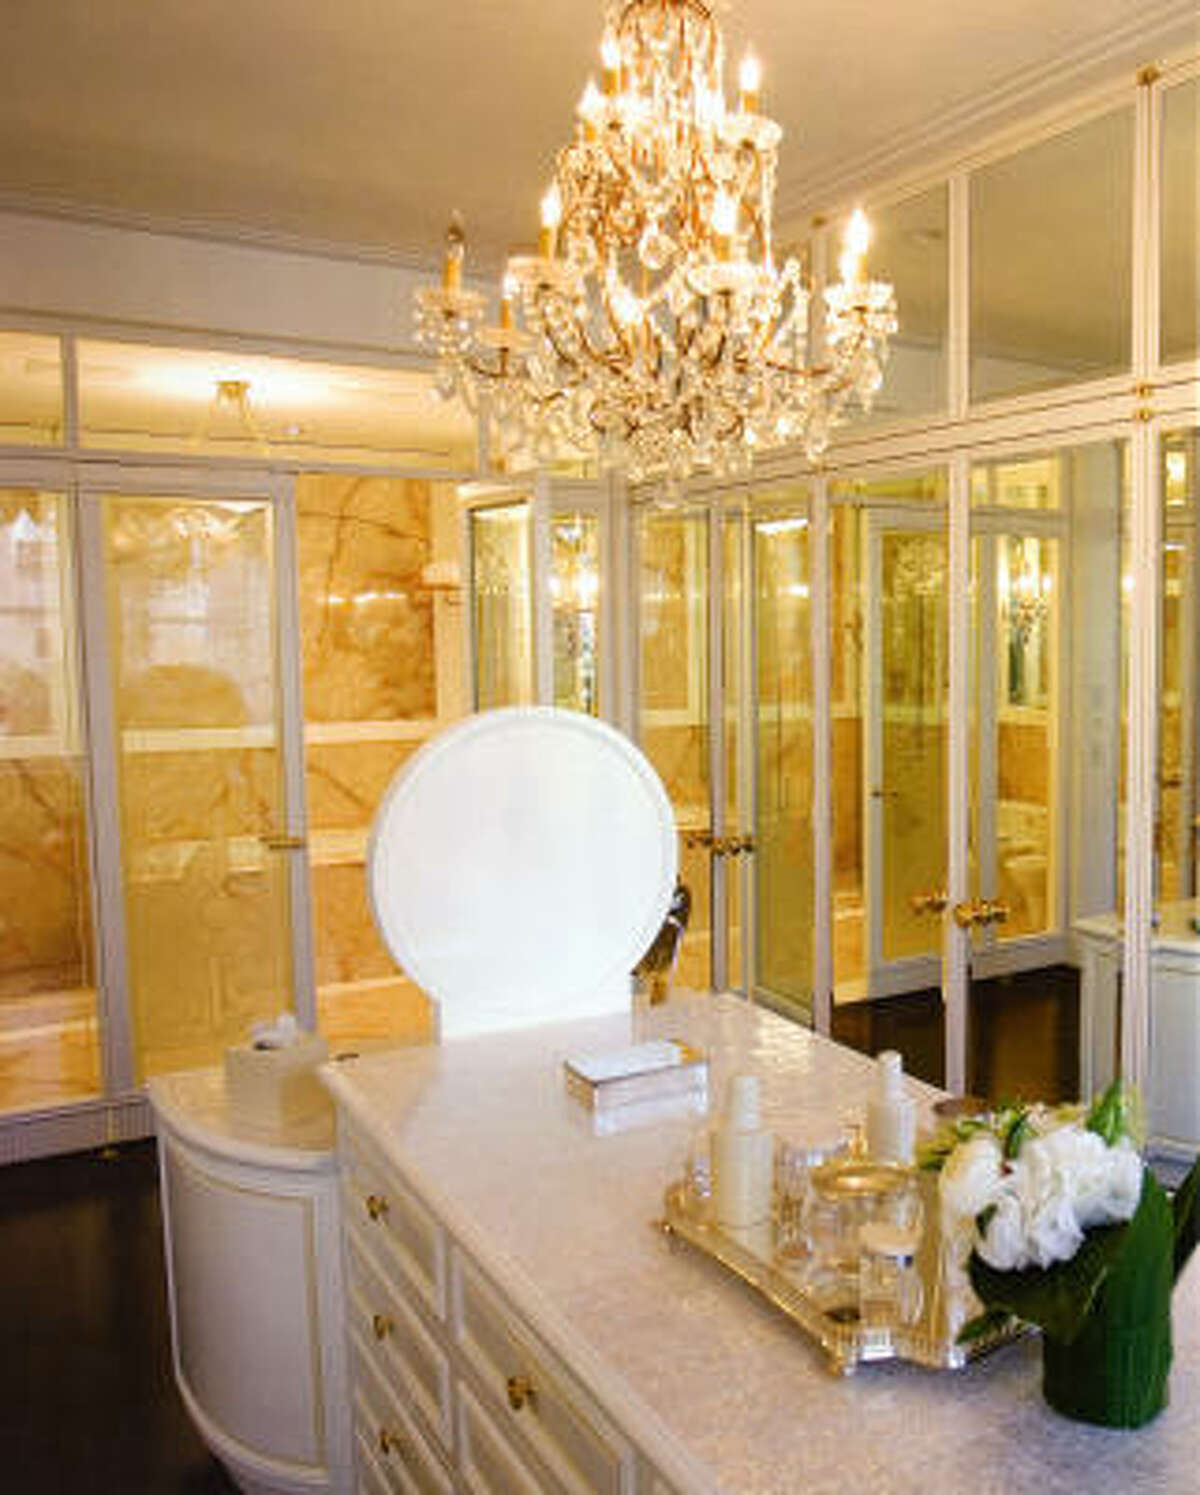 A crystal chandelier lends showstopping glamour to this New York apartment bathroom, as featured in The Luxury Bathroom (Clarkson Potter, $60).